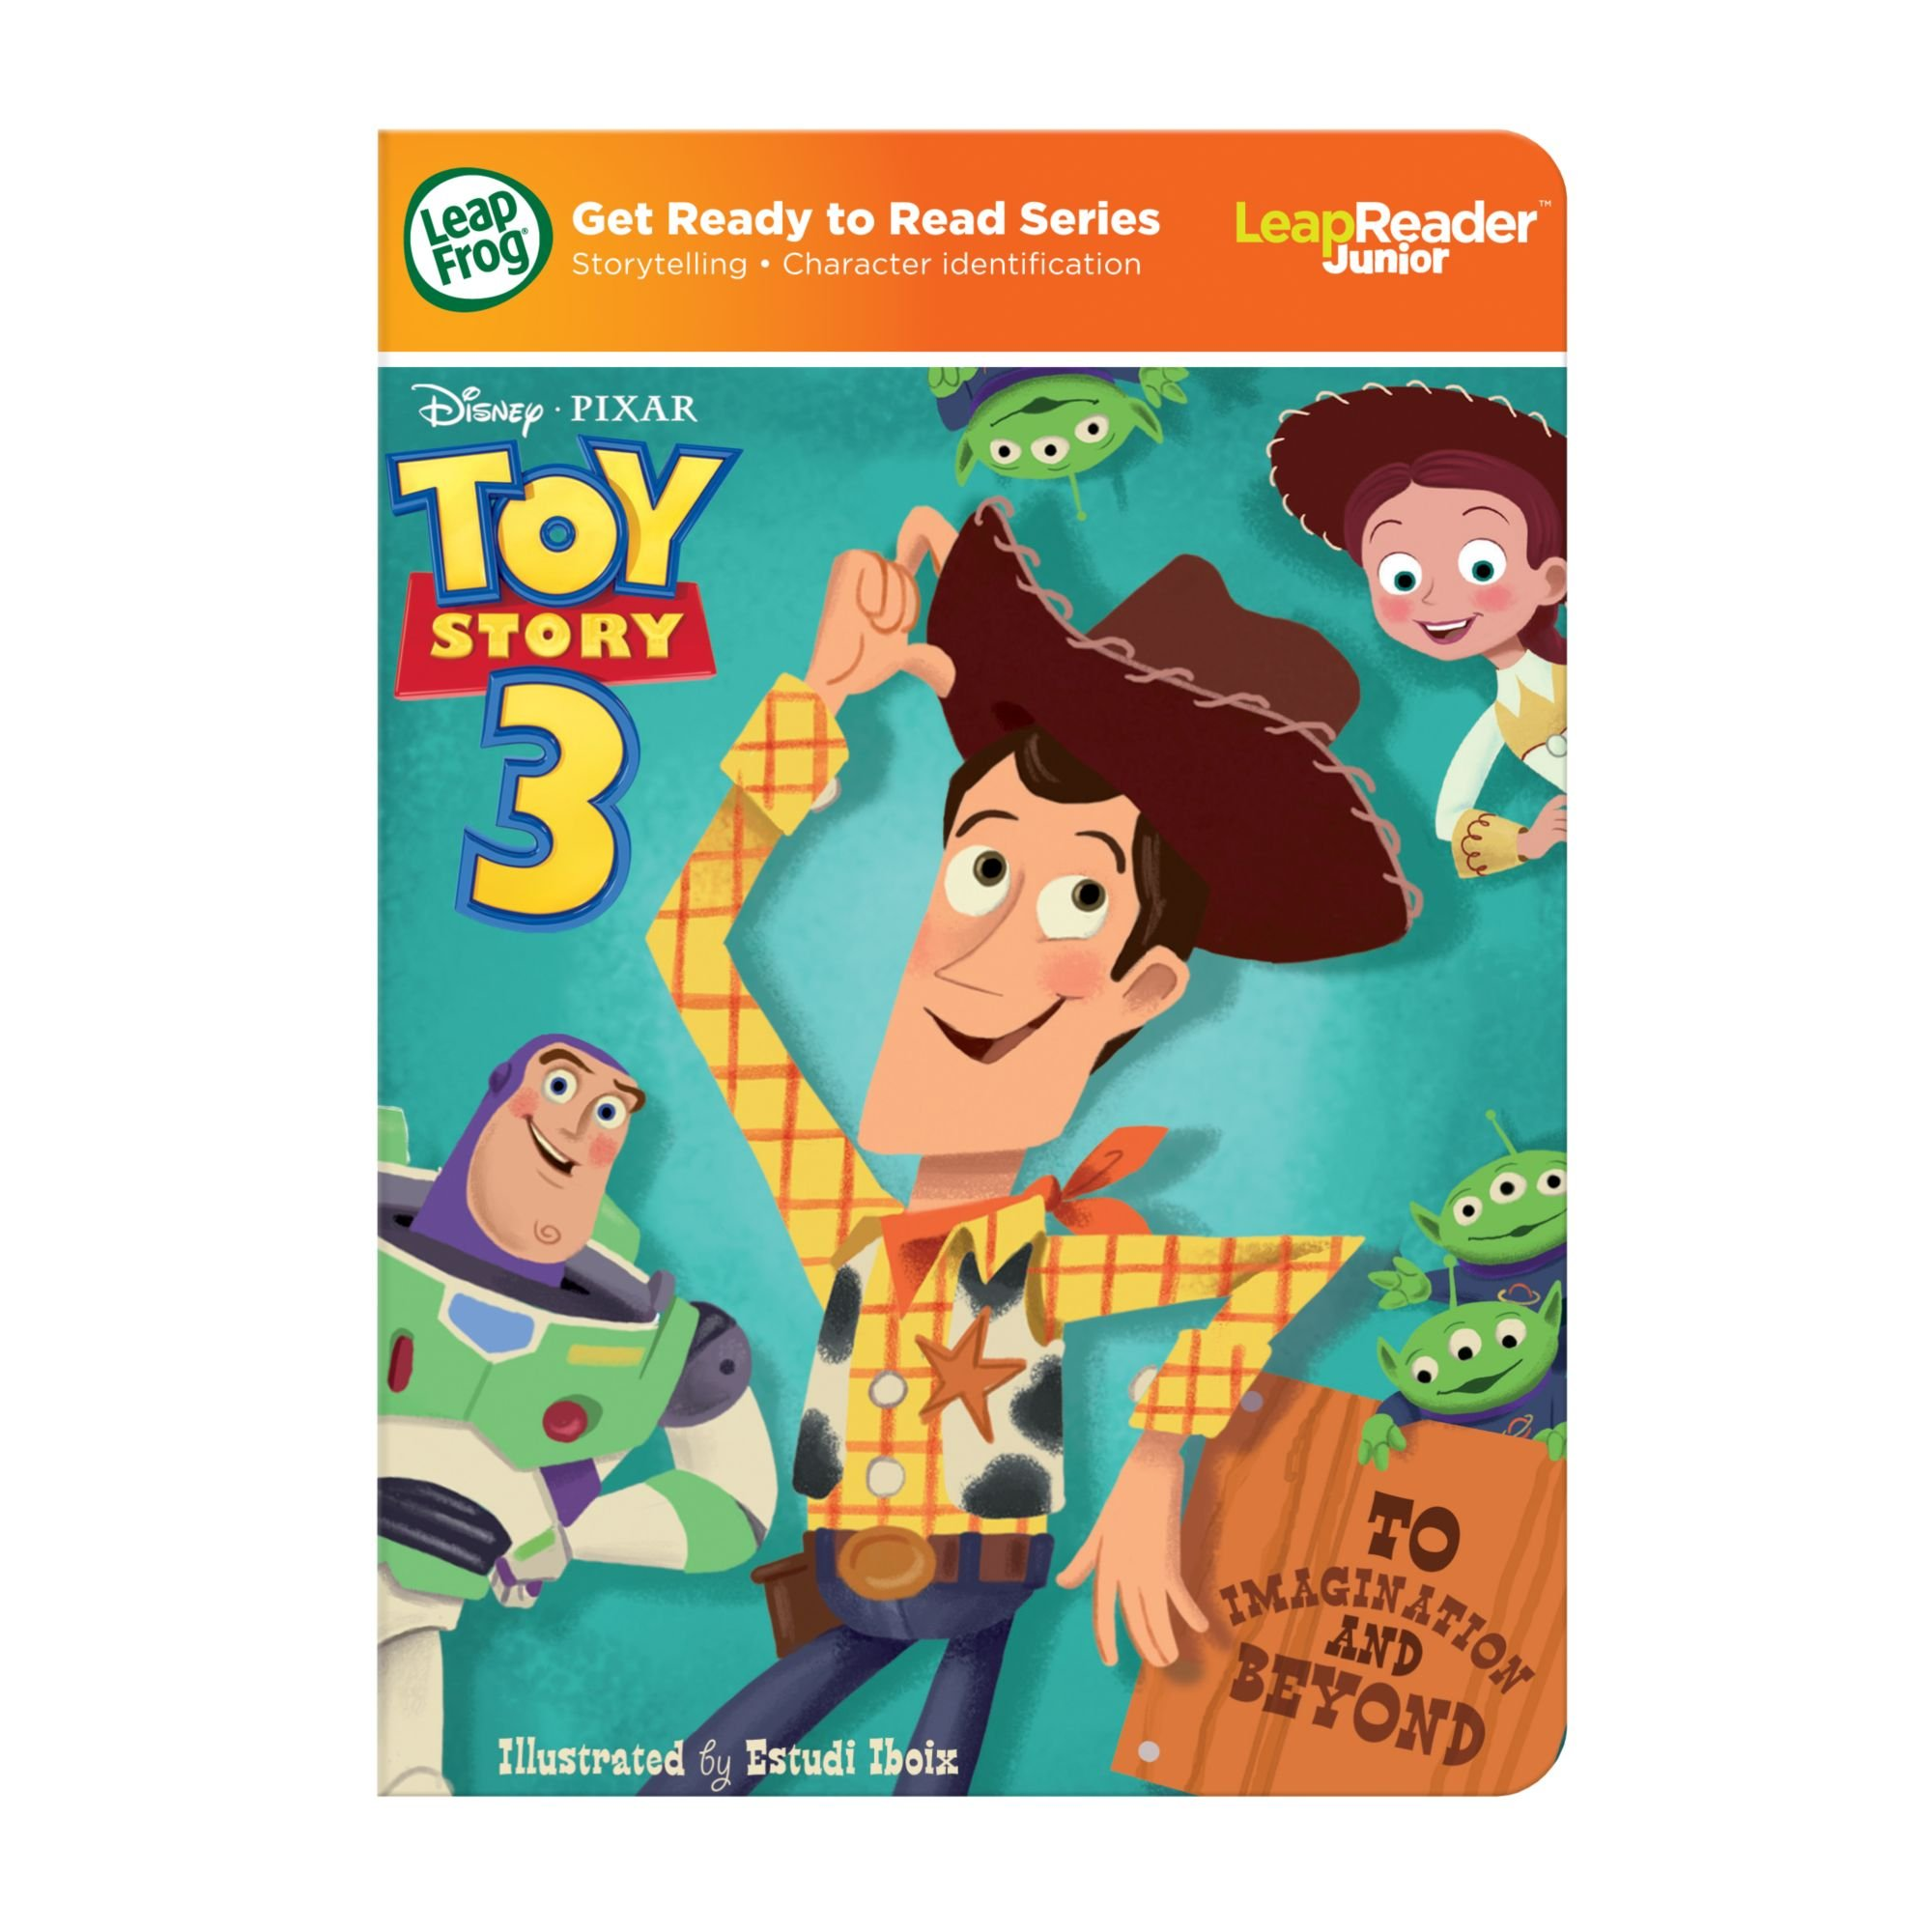 LeapFrog LeapReader Junior Book: DisneyPixar Toy Story 3: To Imagination and Beyond (works with Tag Junior) by LeapFrog (Image #7)